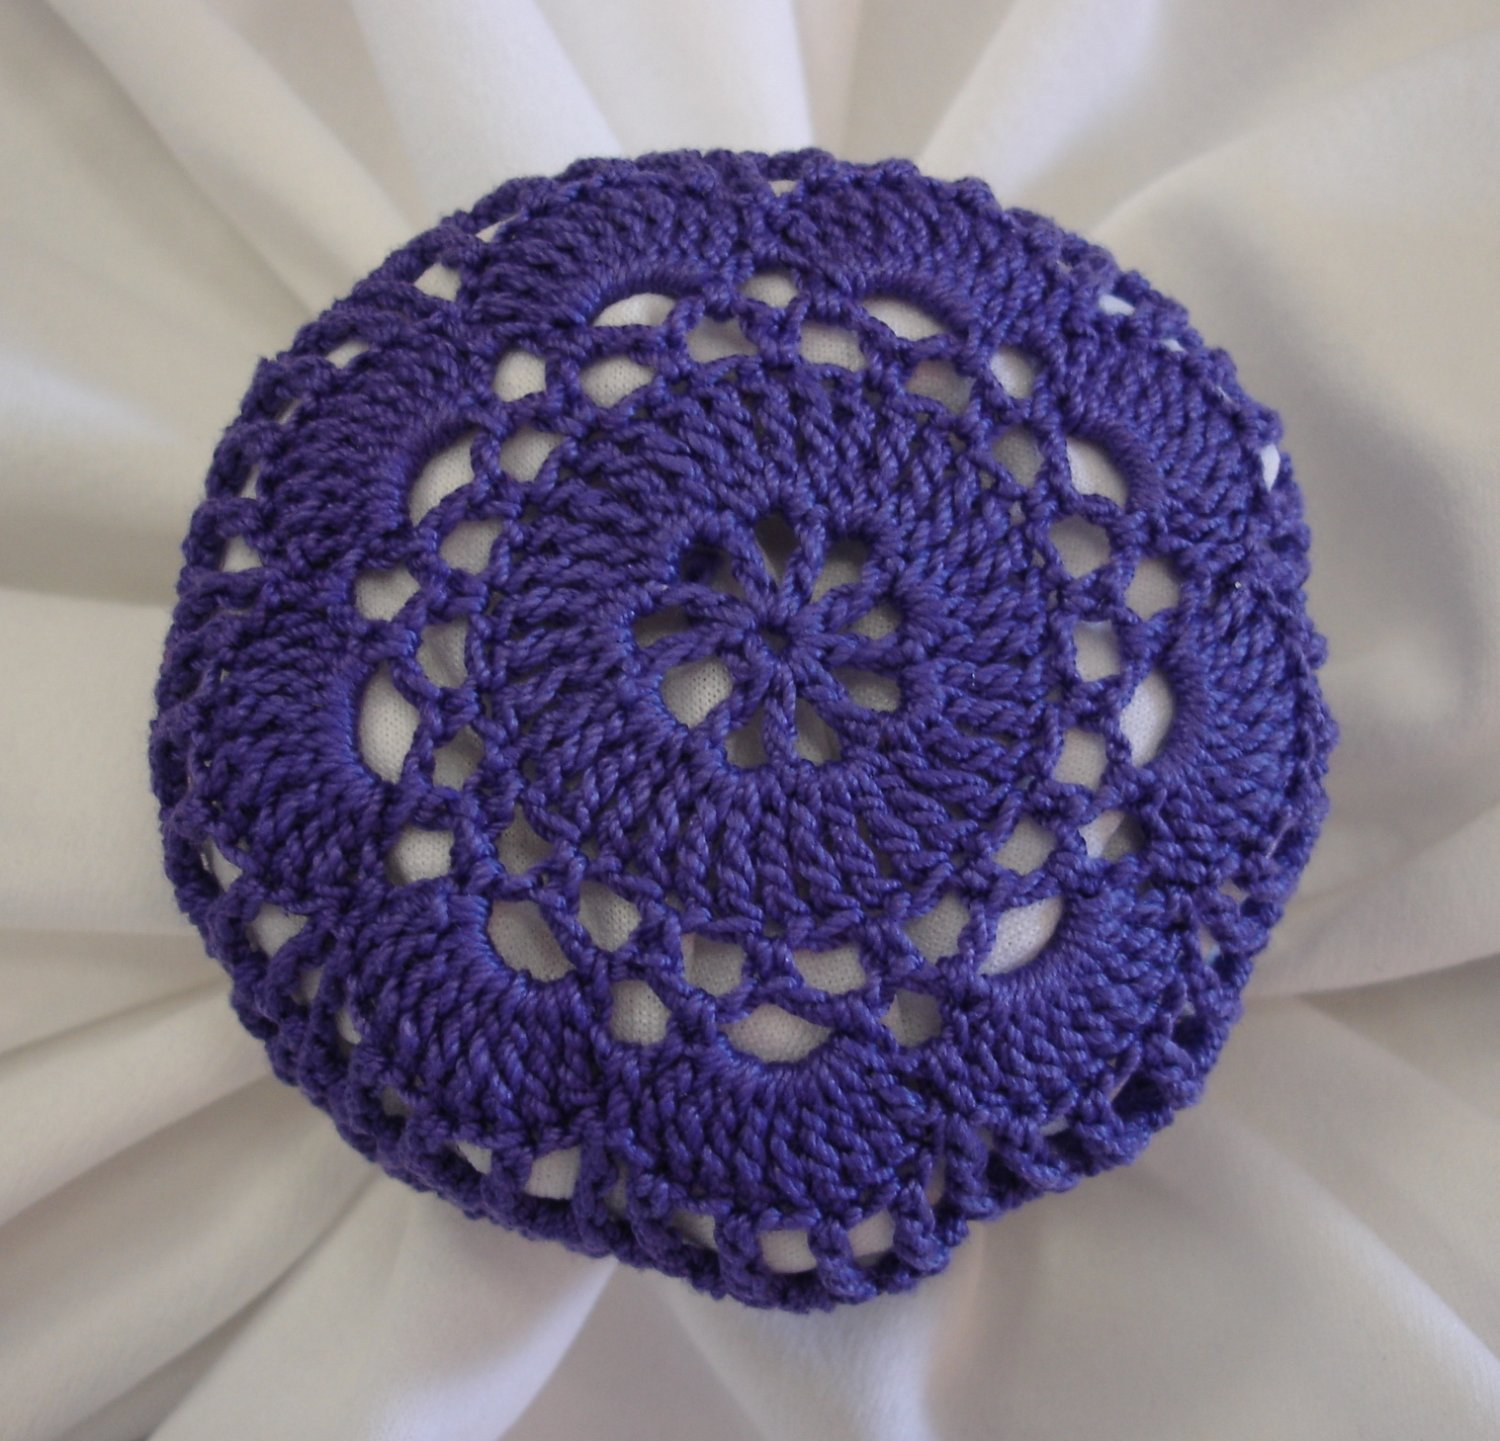 Crochet Hair Bun Cover : Hand Crocheted Purple Hair Net / Bun Cover Flower Style Amish ...